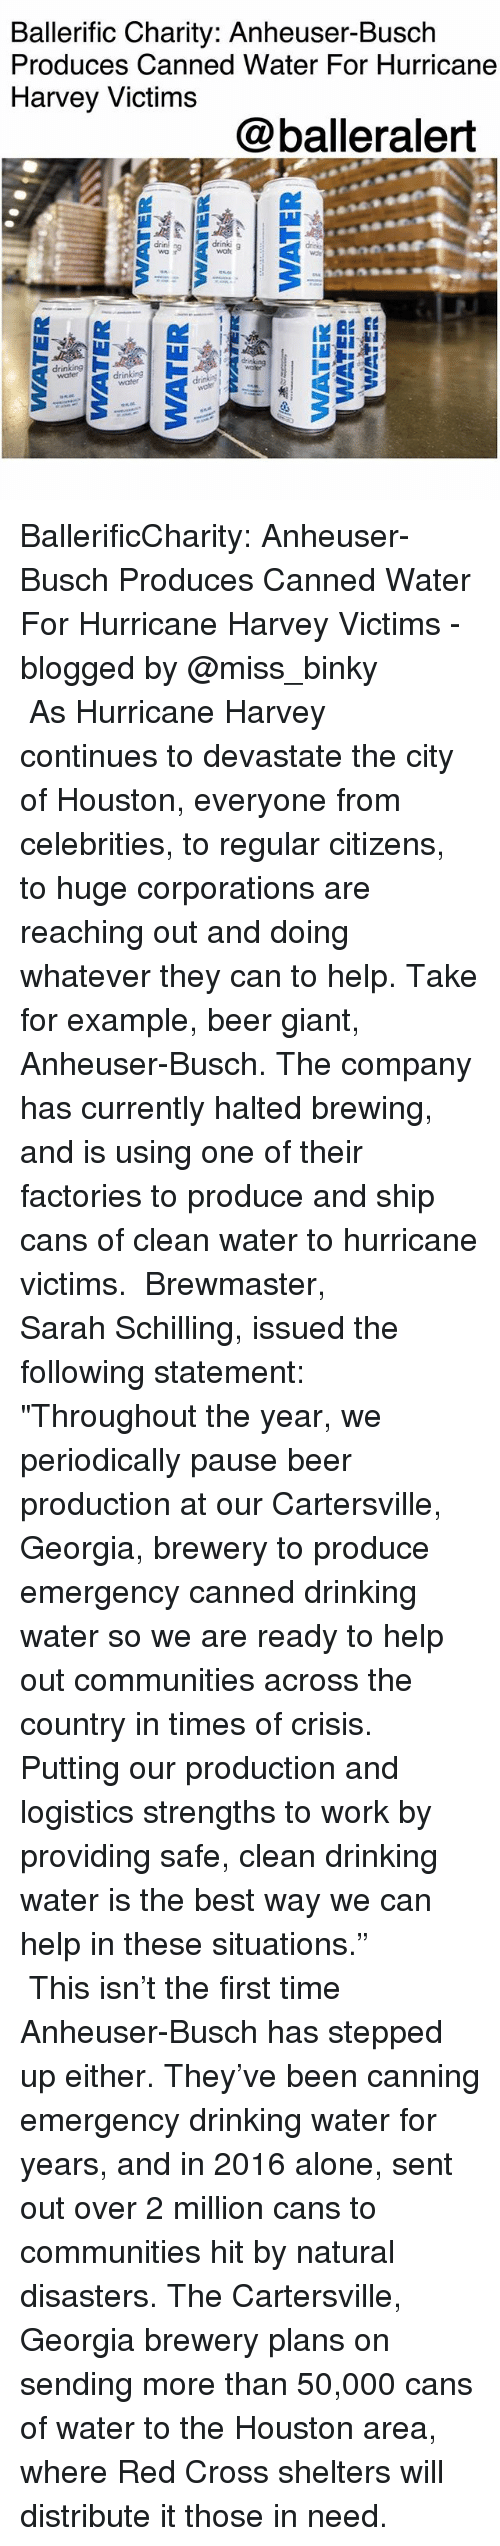 """periodically: Ballerific Charity: Anheuser-Busch  Produces Canned Water For Hurricane  Harvey Victims  @balleralert  drin  drinking  water BallerificCharity: Anheuser-Busch Produces Canned Water For Hurricane Harvey Victims -blogged by @miss_binky ⠀⠀⠀⠀⠀⠀⠀ ⠀⠀⠀⠀⠀⠀⠀ As Hurricane Harvey continues to devastate the city of Houston, everyone from celebrities, to regular citizens, to huge corporations are reaching out and doing whatever they can to help. Take for example, beer giant, Anheuser-Busch. The company has currently halted brewing, and is using one of their factories to produce and ship cans of clean water to hurricane victims. ⠀⠀⠀⠀⠀⠀⠀ Brewmaster, Sarah Schilling, issued the following statement: ⠀⠀⠀⠀⠀⠀⠀ """"Throughout the year, we periodically pause beer production at our Cartersville, Georgia, brewery to produce emergency canned drinking water so we are ready to help out communities across the country in times of crisis. Putting our production and logistics strengths to work by providing safe, clean drinking water is the best way we can help in these situations."""" ⠀⠀⠀⠀⠀⠀⠀ ⠀⠀⠀⠀⠀⠀⠀ This isn't the first time Anheuser-Busch has stepped up either. They've been canning emergency drinking water for years, and in 2016 alone, sent out over 2 million cans to communities hit by natural disasters. The Cartersville, Georgia brewery plans on sending more than 50,000 cans of water to the Houston area, where Red Cross shelters will distribute it those in need."""